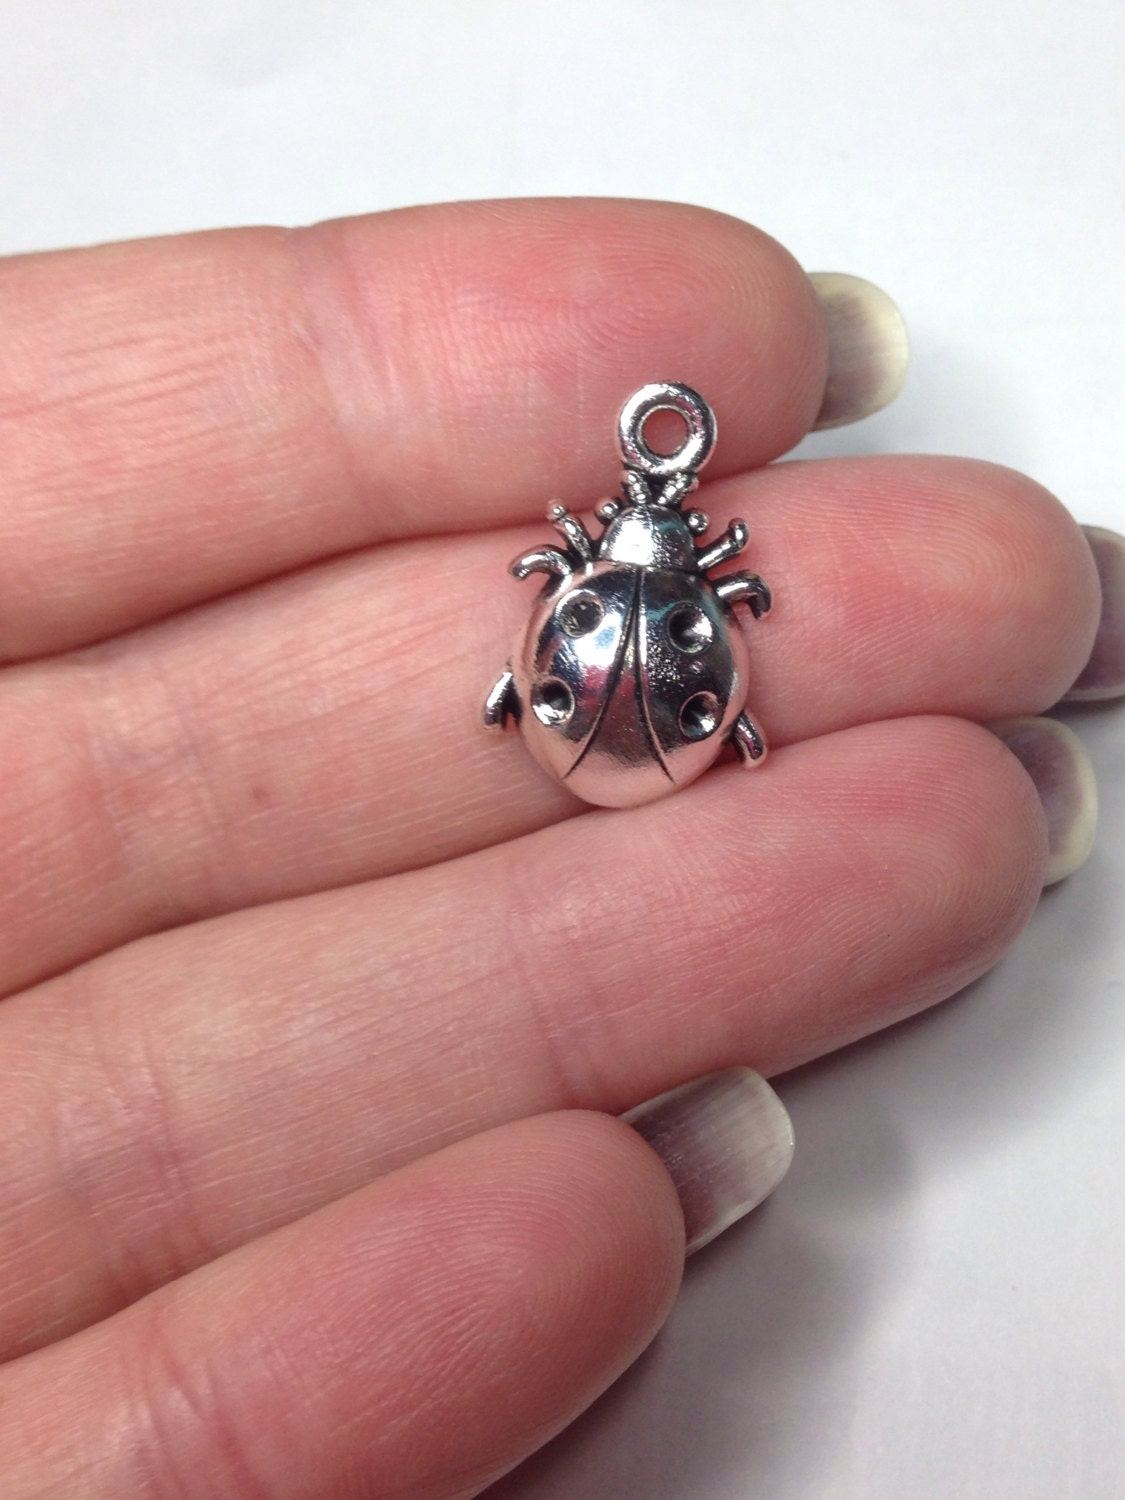 X 5 Ladybug Charms Antique Silver Tone Insect Charms